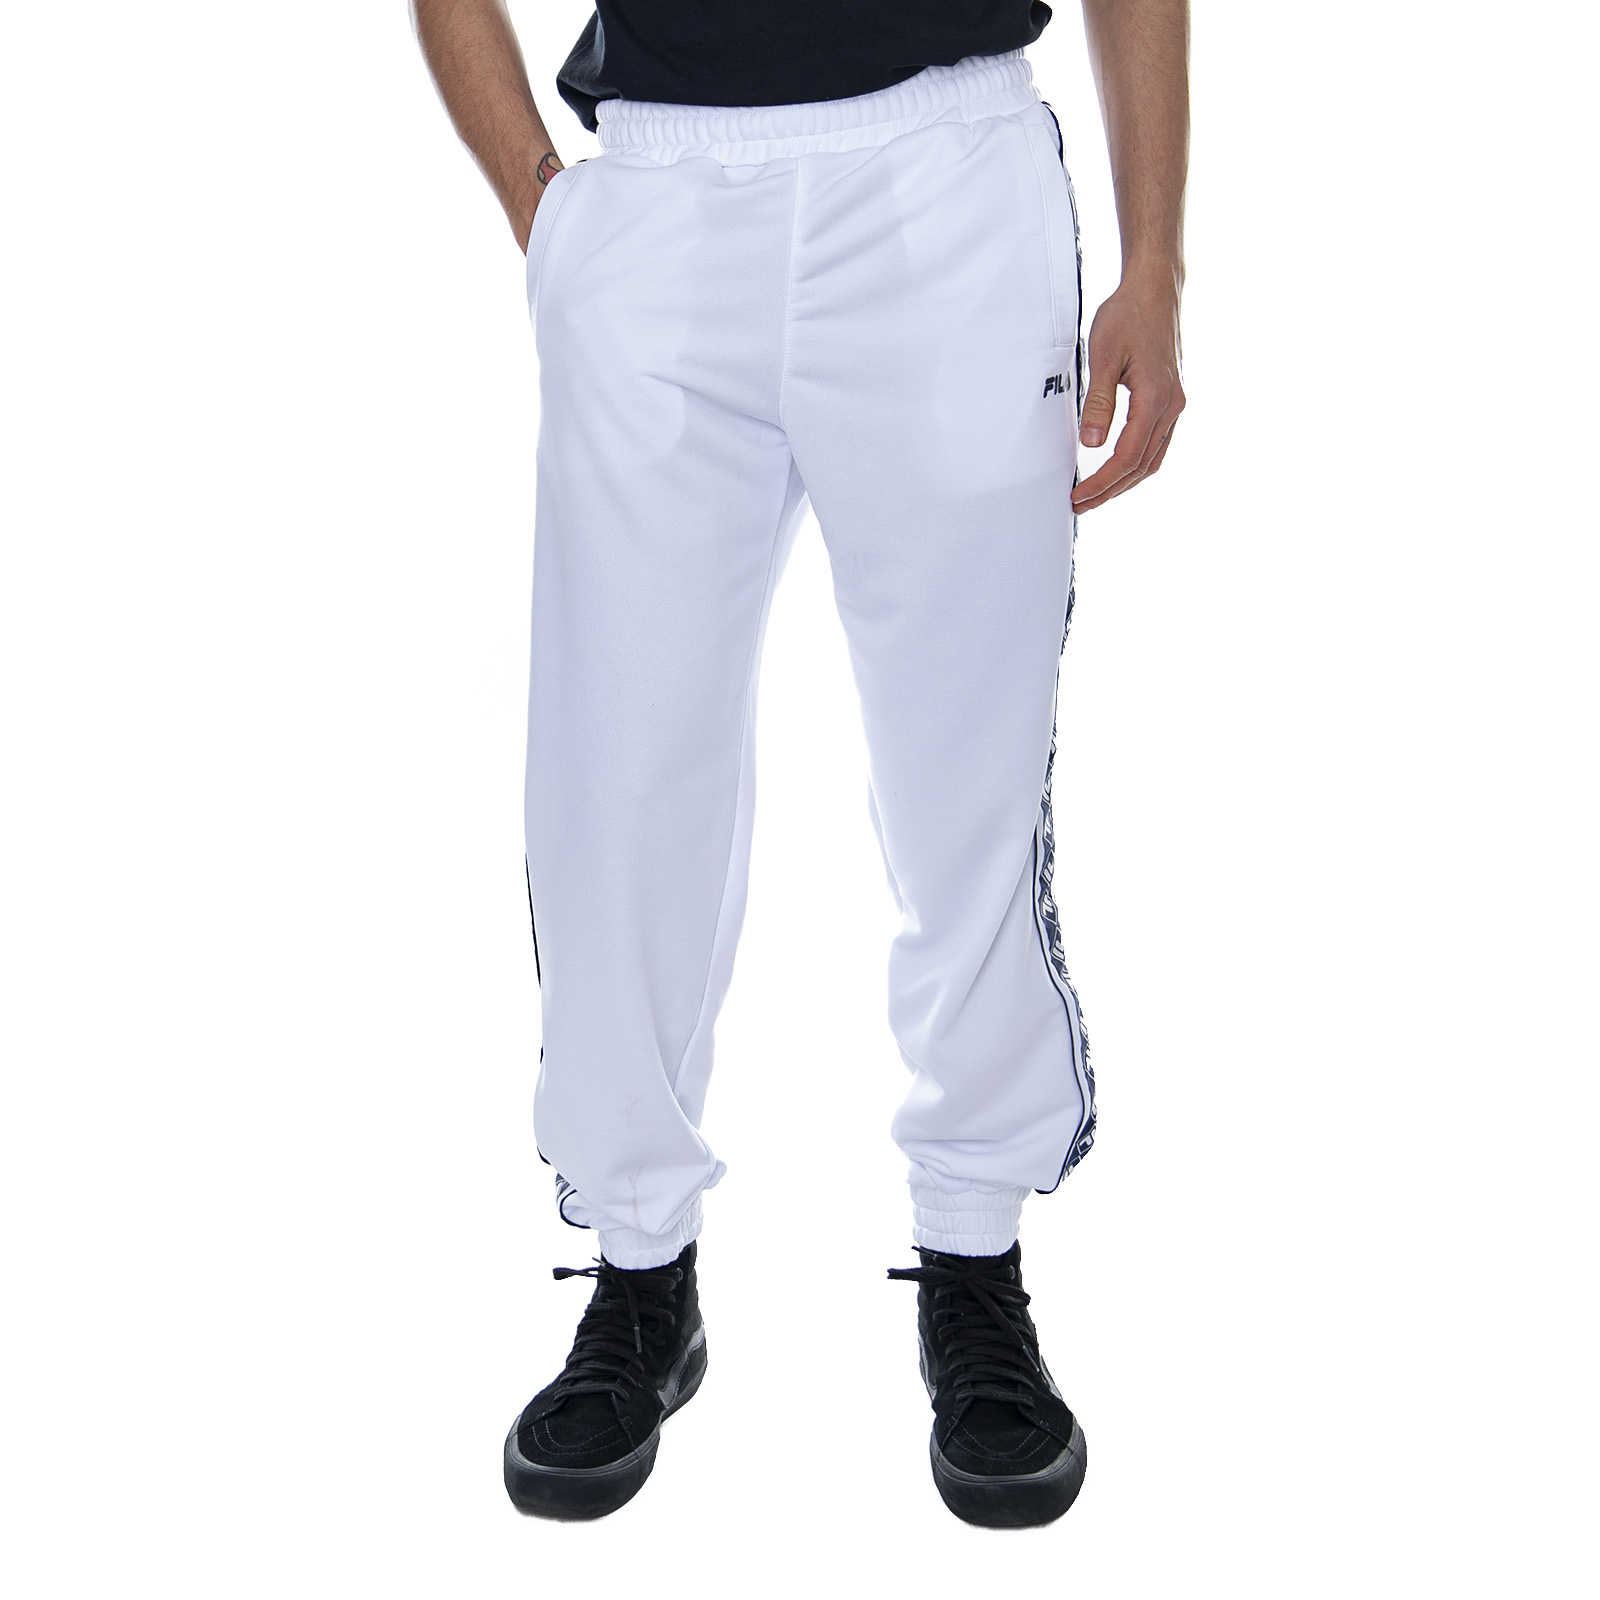 Details about Fila M Ralph Track White Men's Trousers White